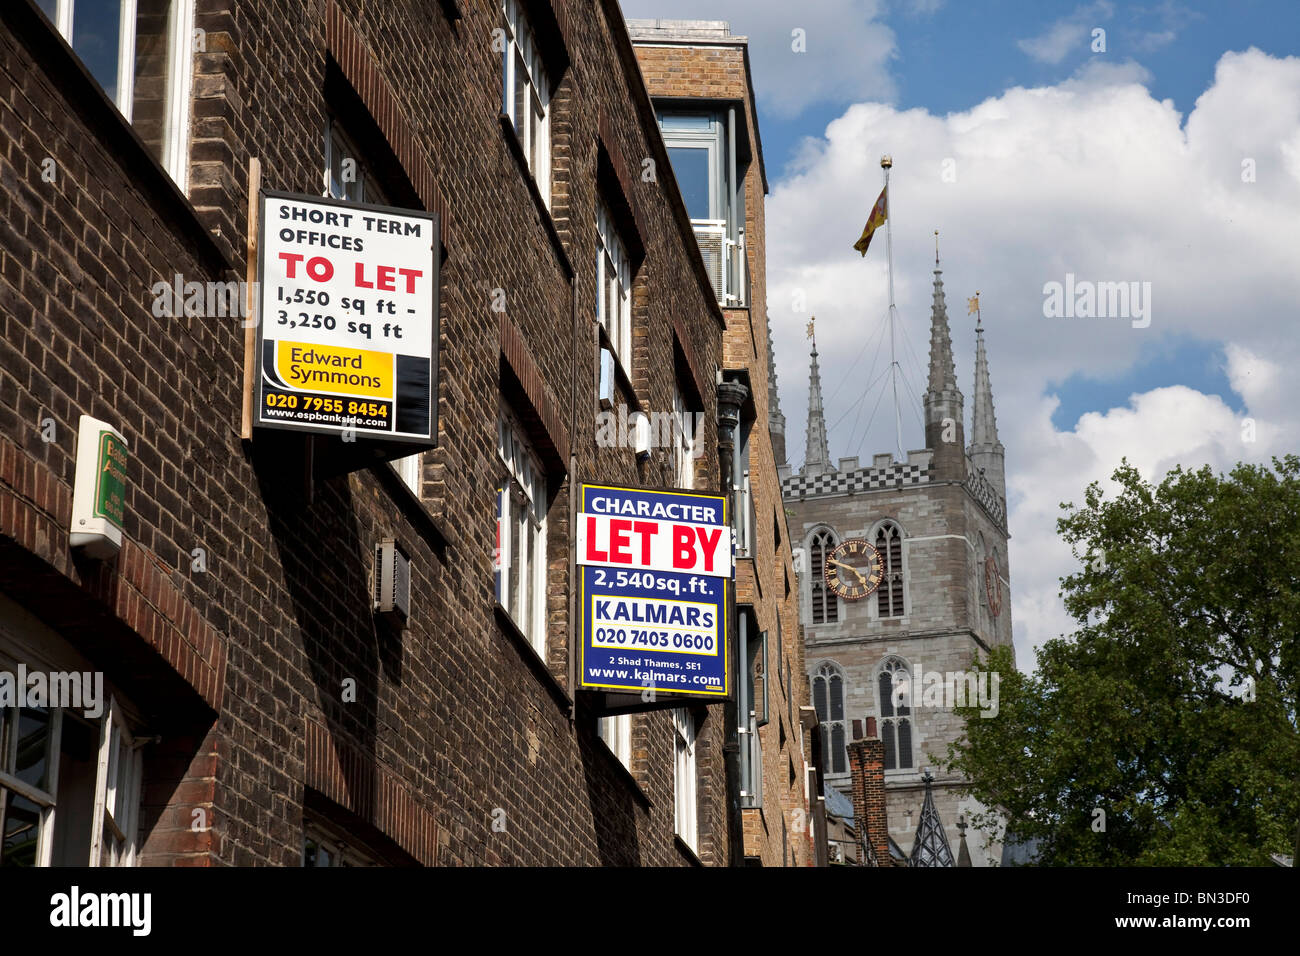 Offices to let in the city centre of London, at the back a typical British cathedral - Stock Image